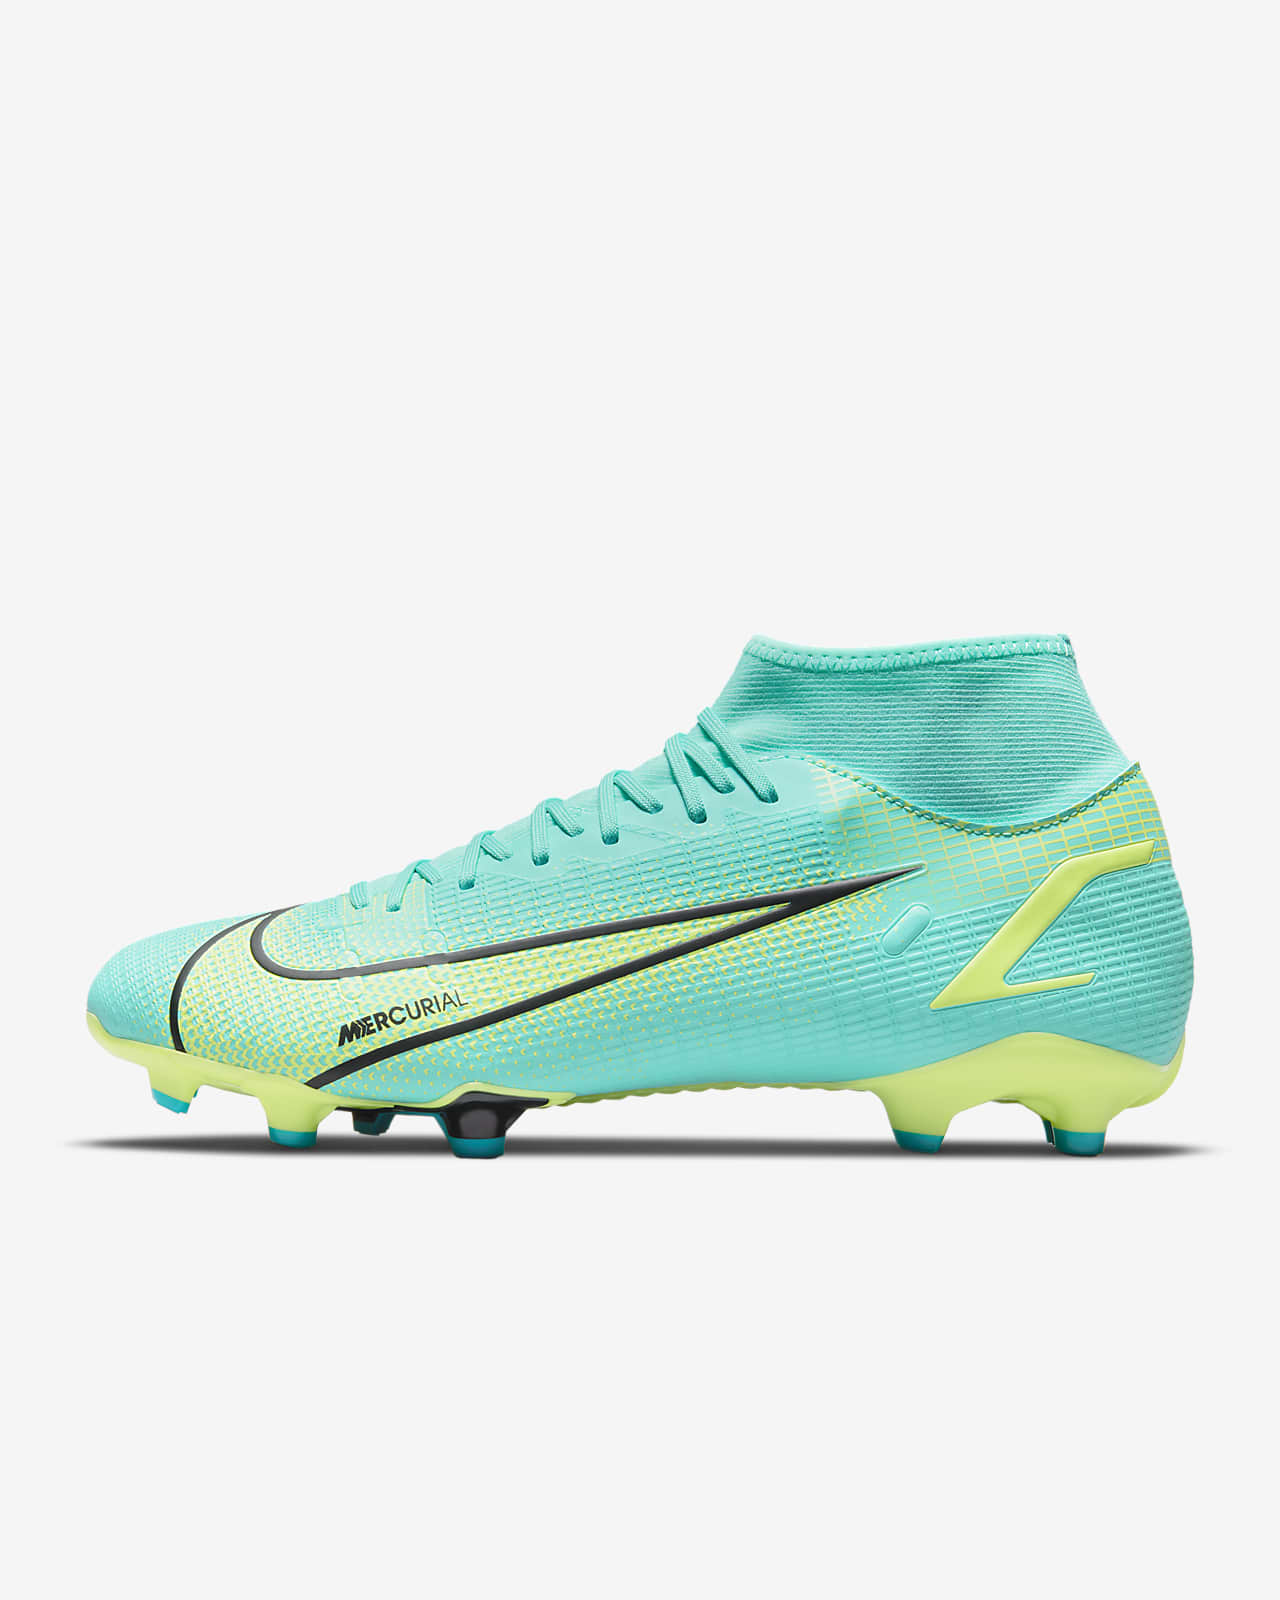 Chaussure de football à crampons multi-surfaces Nike Mercurial Superfly 8 Academy MG